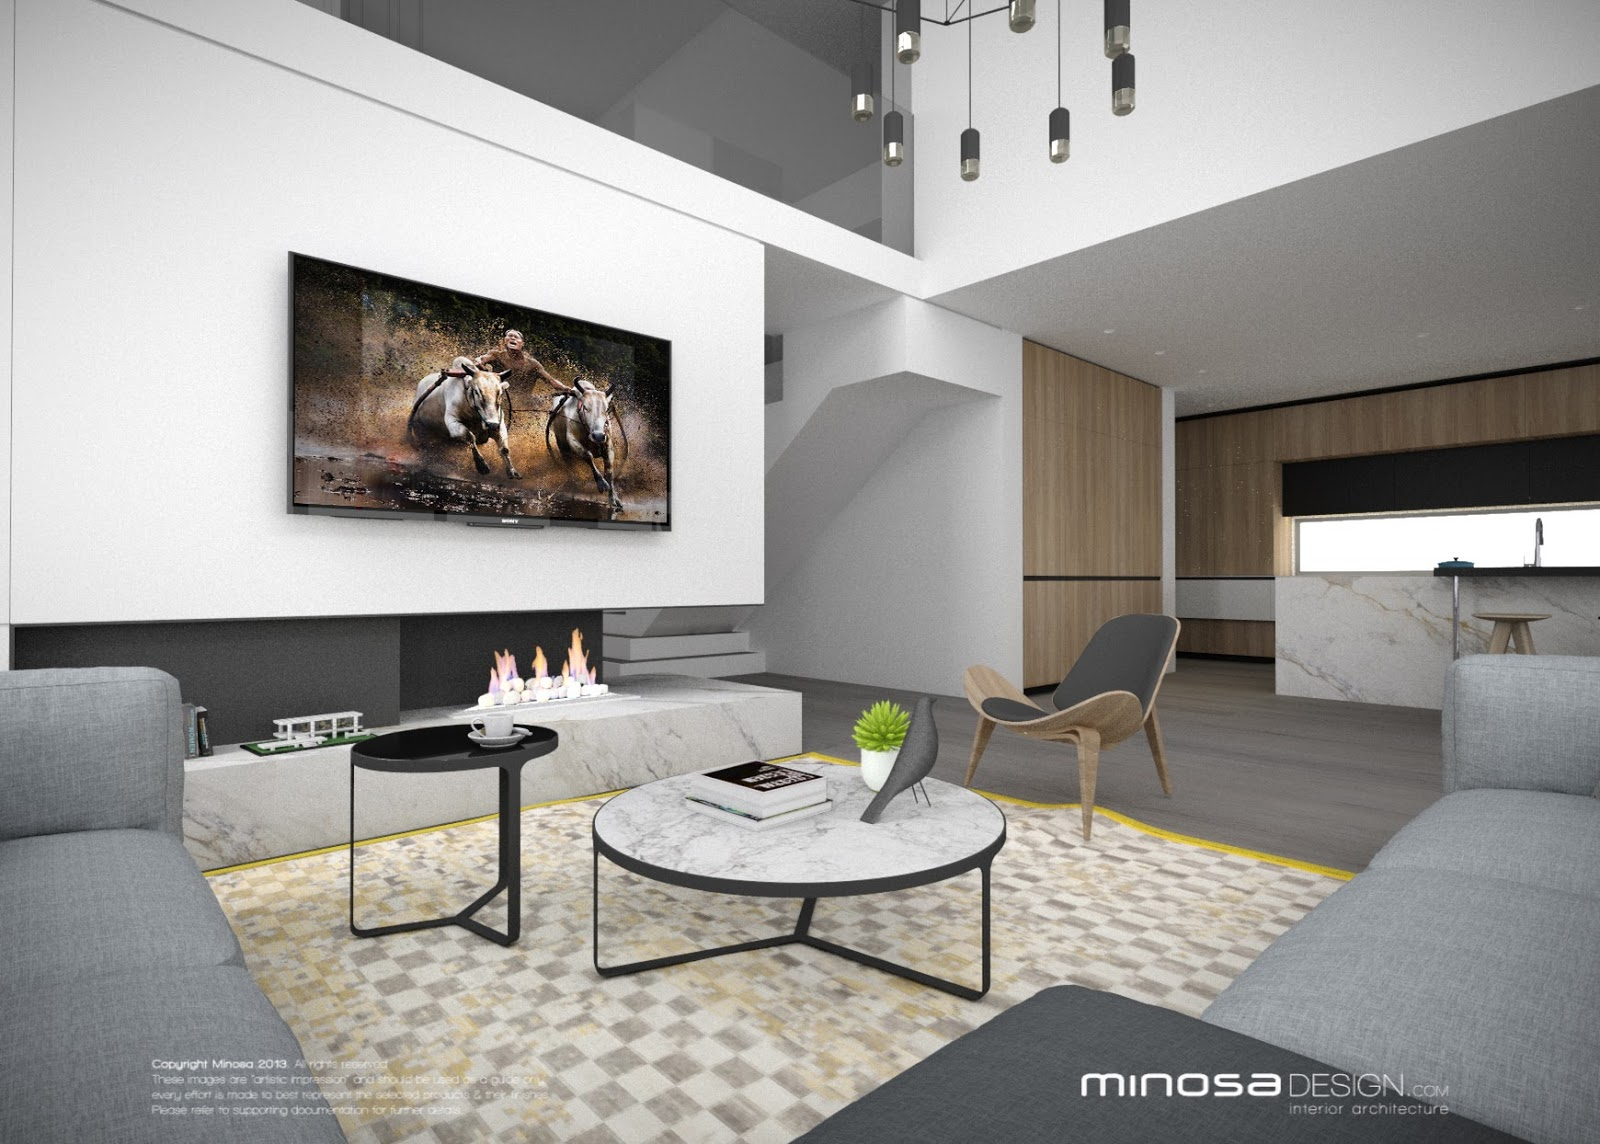 Minosa: The Modern Living Room